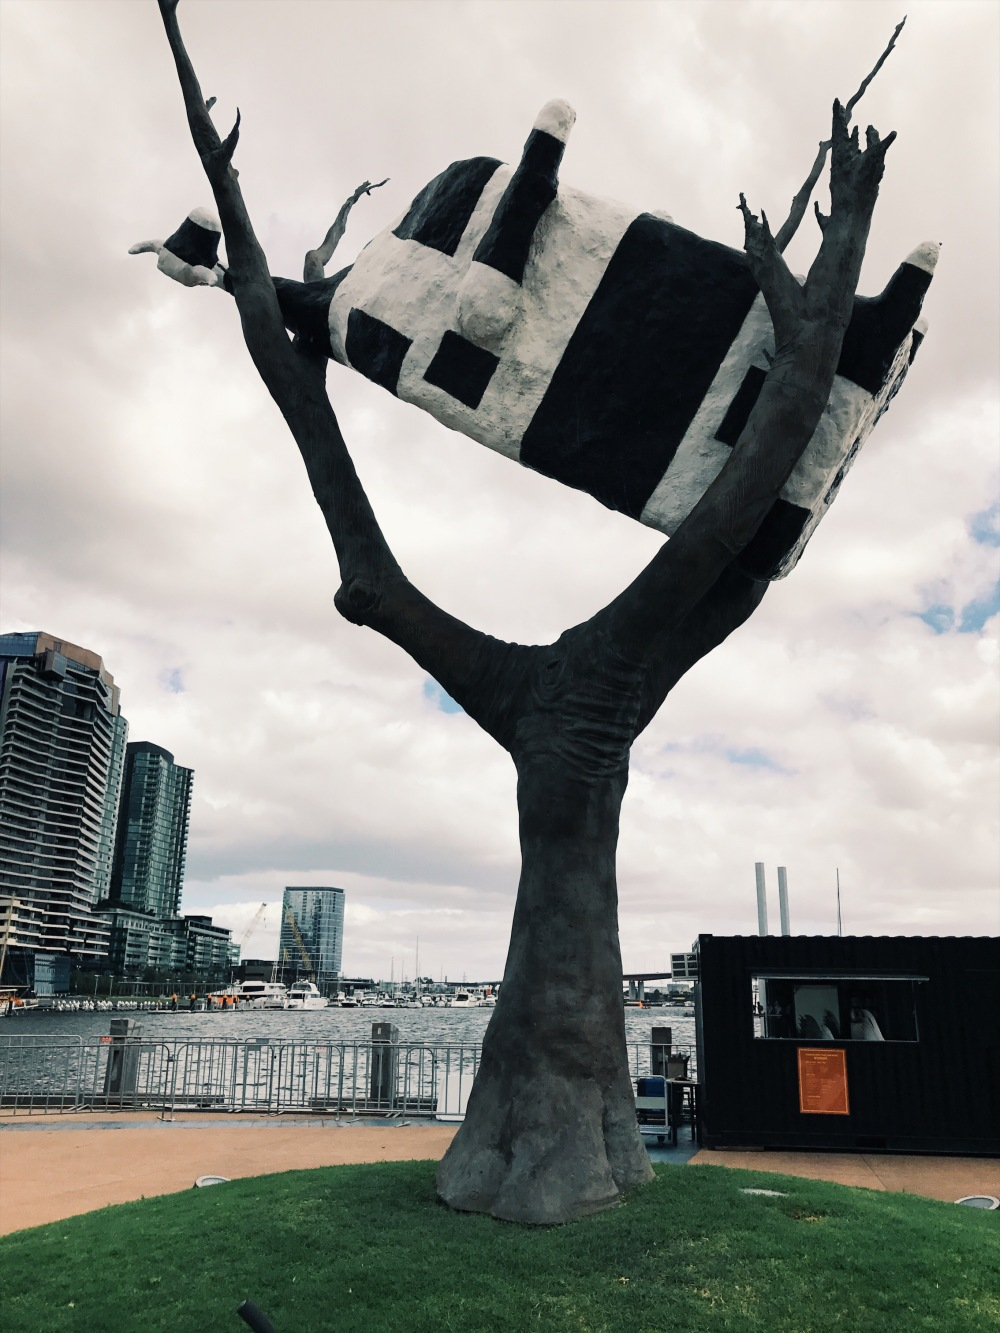 Melbourne art installations